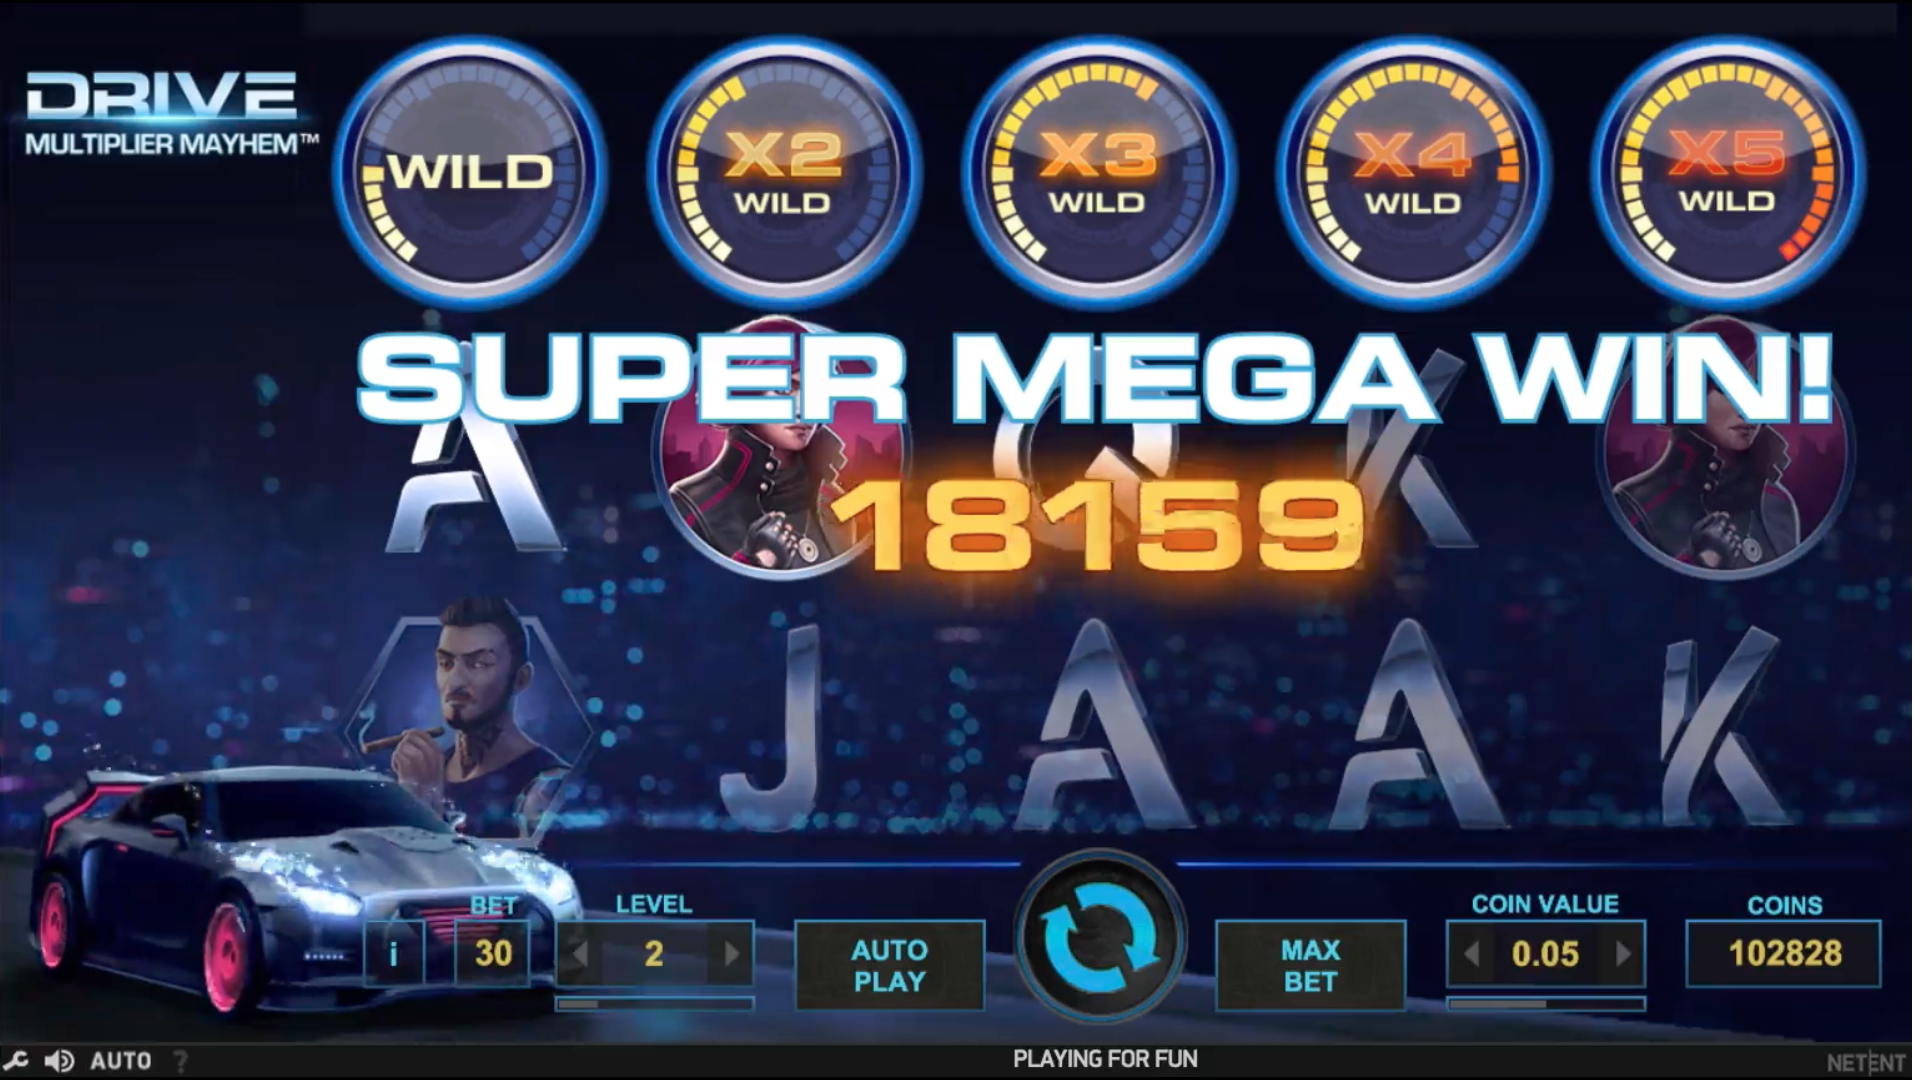 Super Mega win with all wilds on the Drive video slot